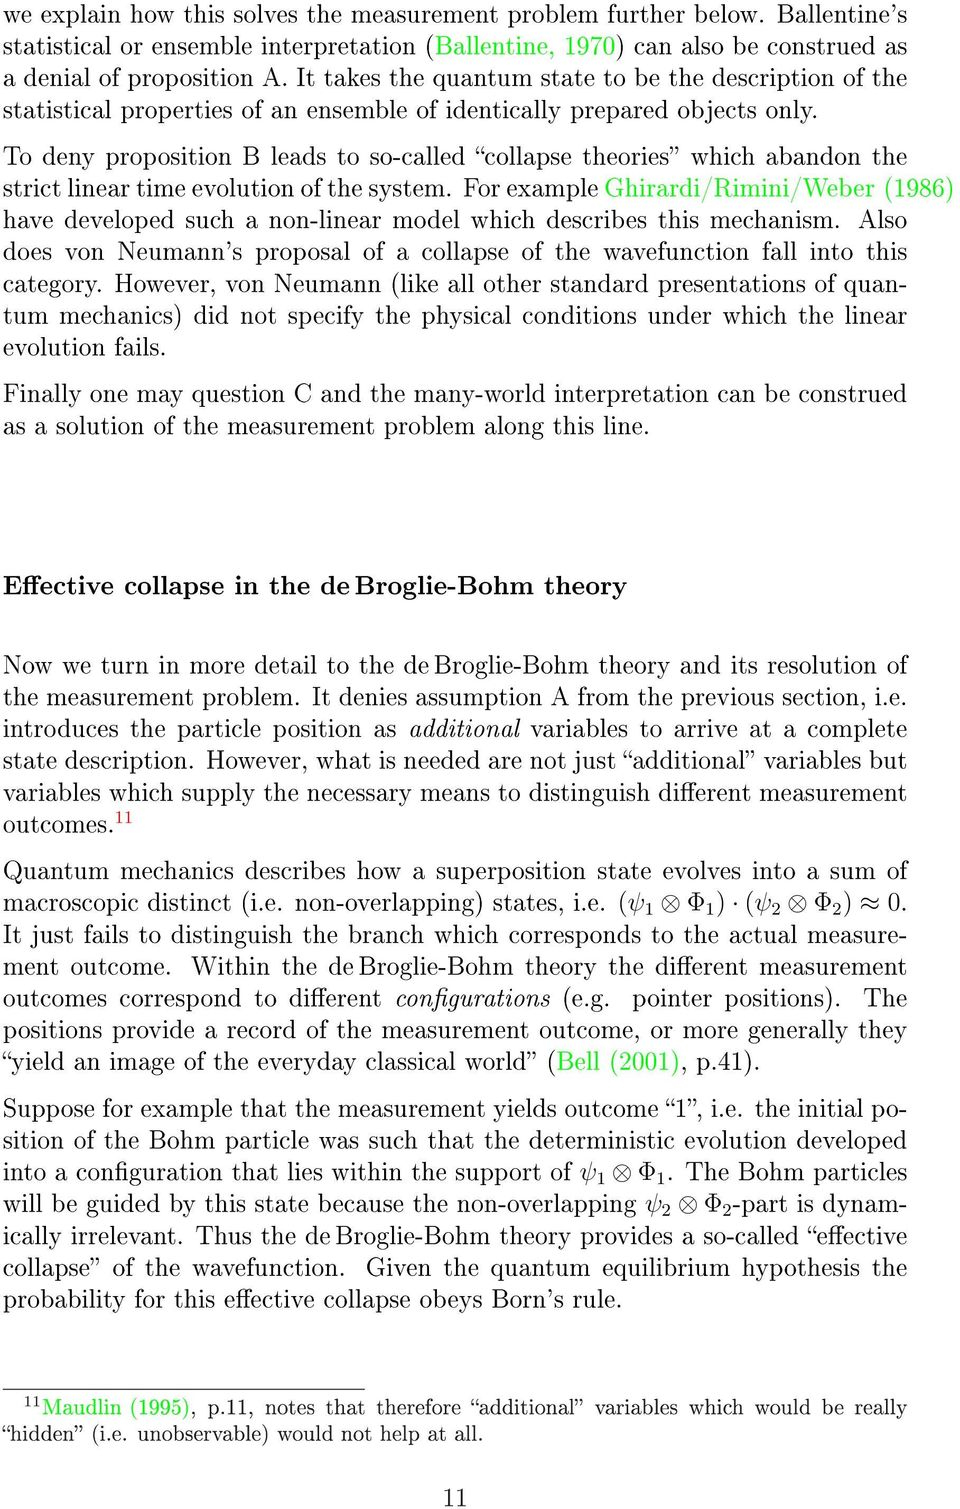 To deny proposition B leads to so-called collapse theories which abandon the strict linear time evolution of the system.